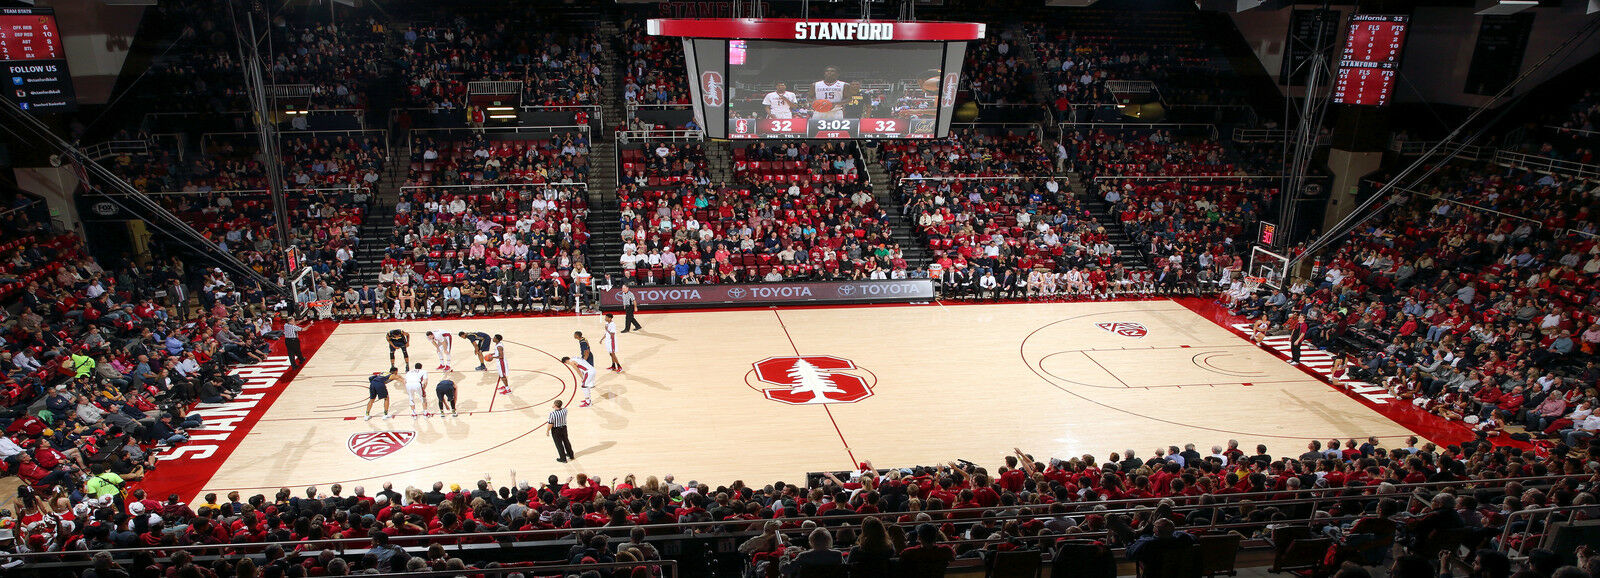 Montana Grizzlies at Stanford Cardinal Basketball